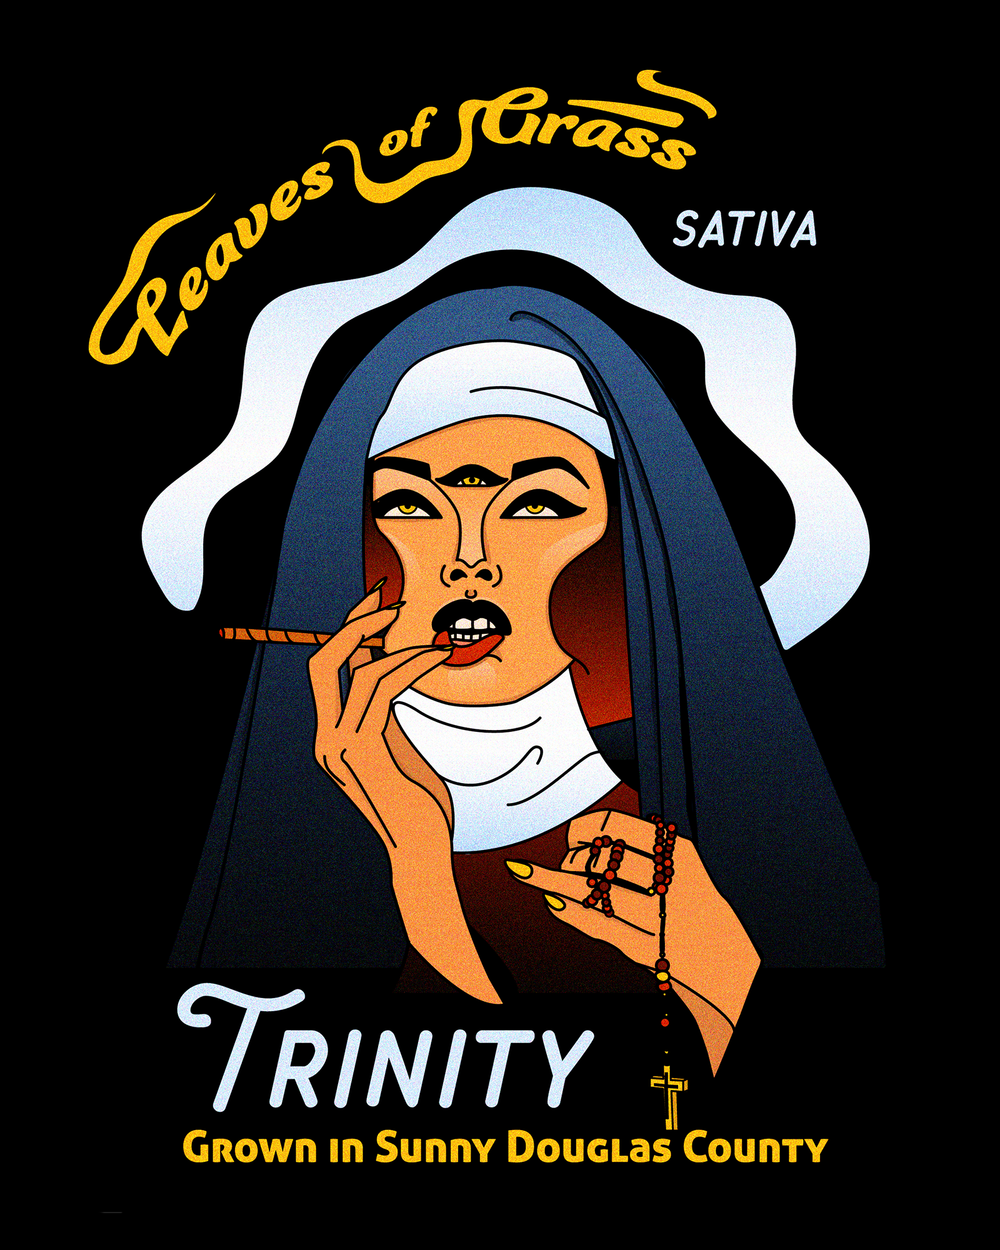 Trinity is a super mind opening strain, so I drew a priestess/nun going cross eyed trying to look at her own third eye. A crown of smoke halos her head.